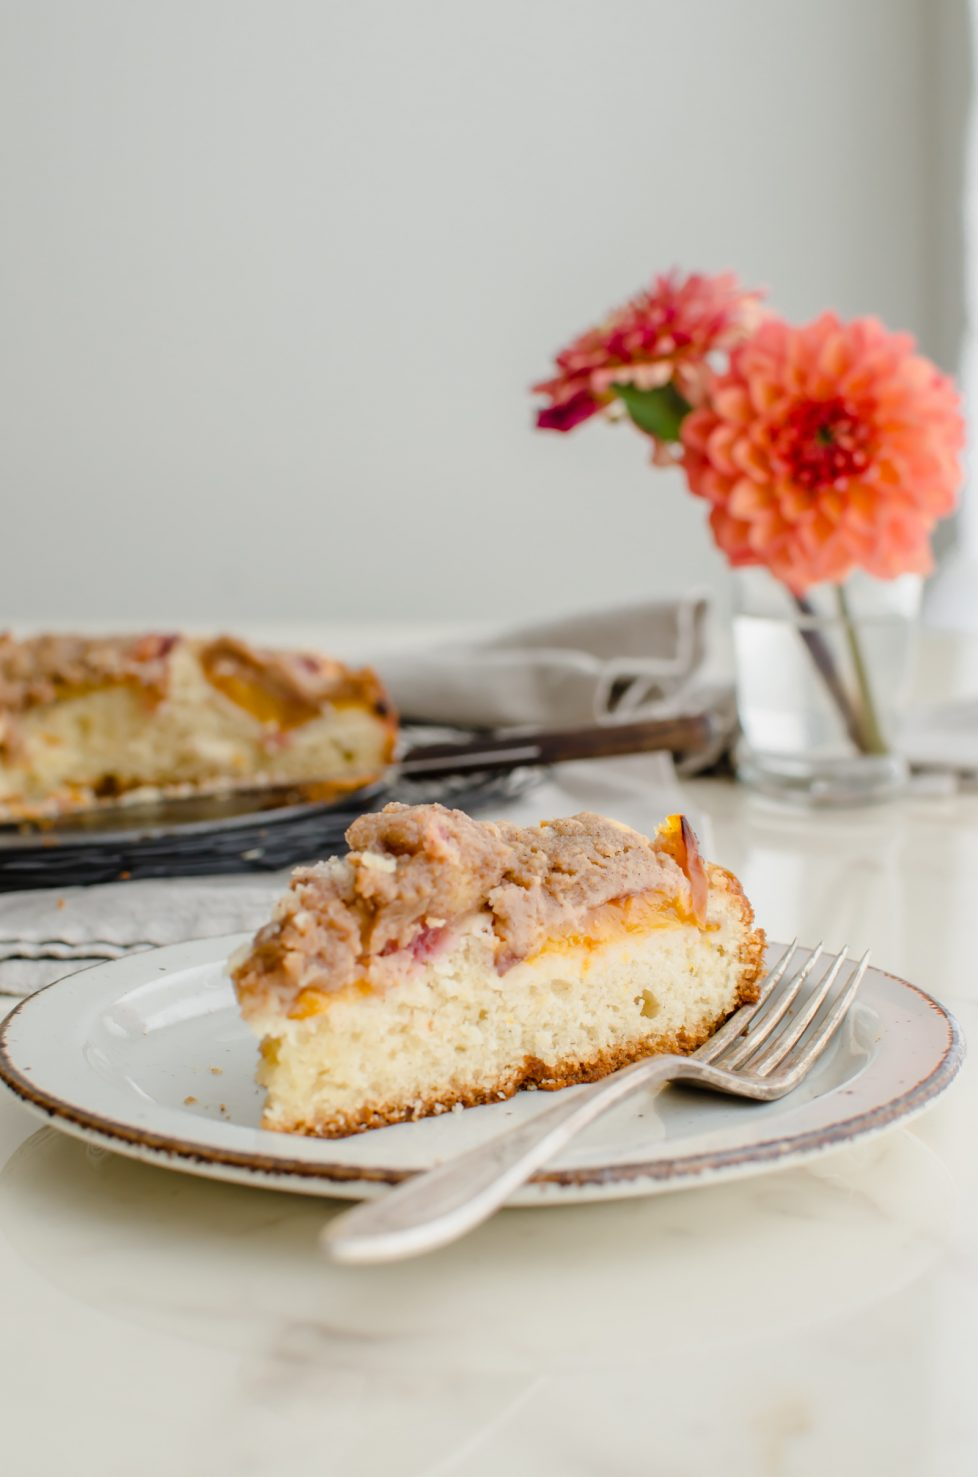 A slice of peach crumb coffee cake on a white countertop with a vase of dahlias in the background.